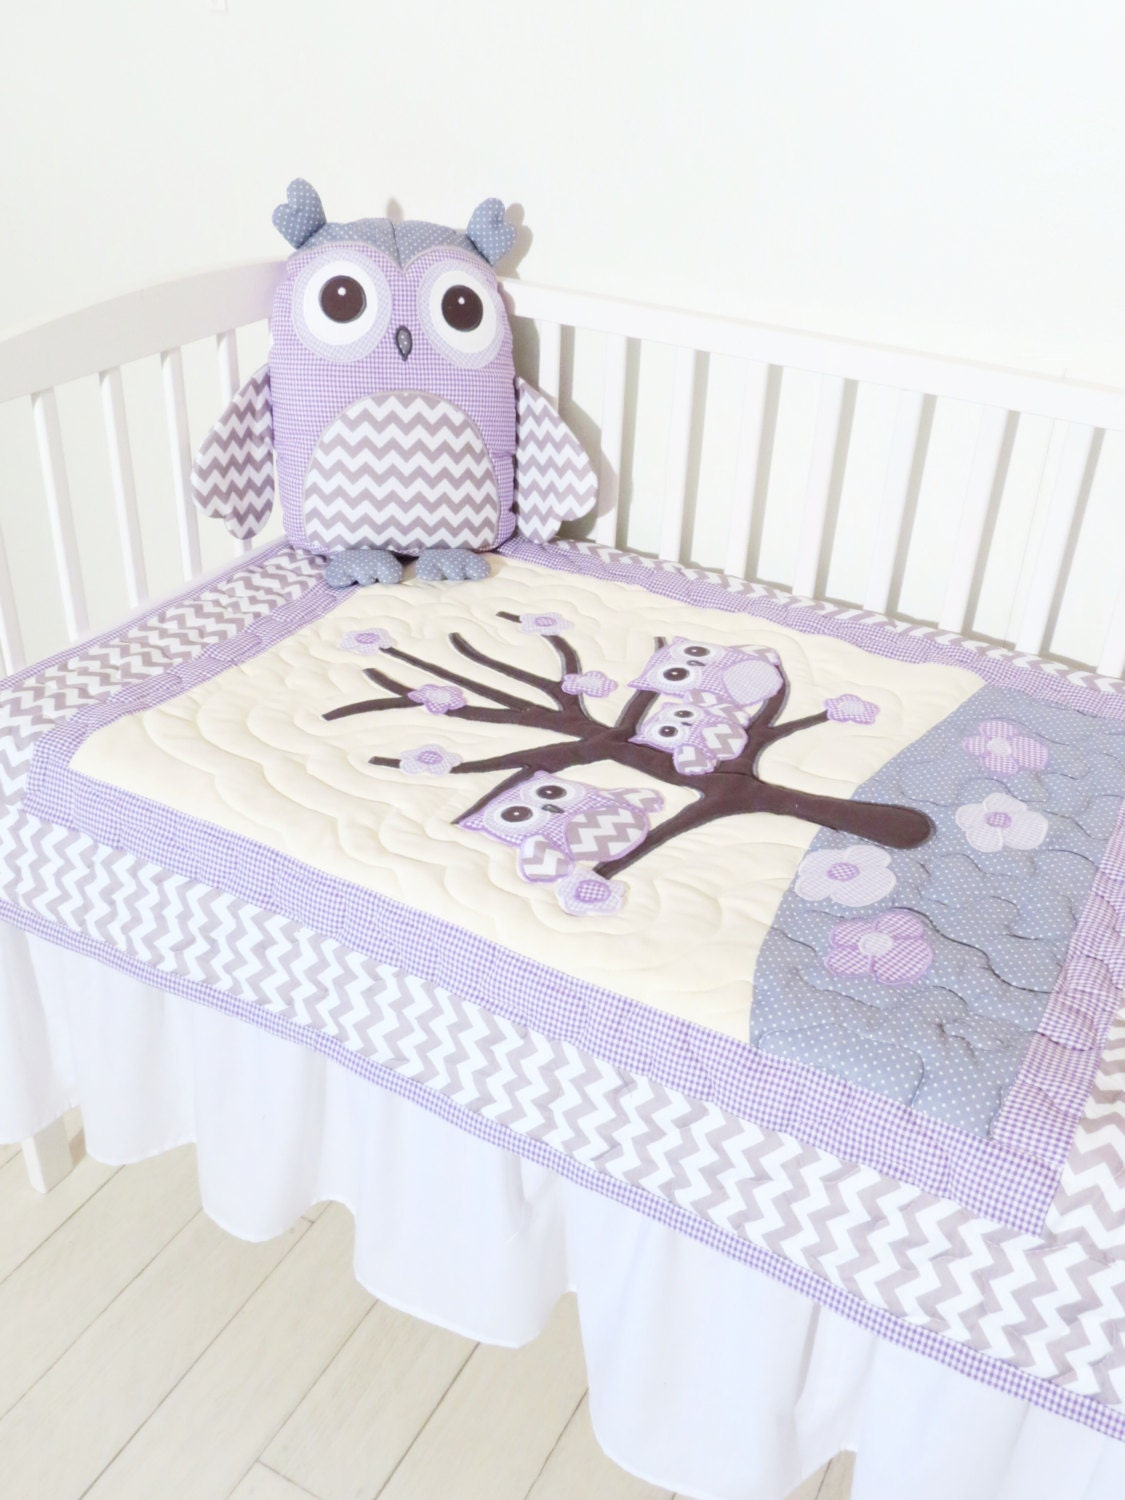 Baby Owl Bedroom Set: Organic Owl Quilt Baby Crib Bedding Kids Blanket Owl